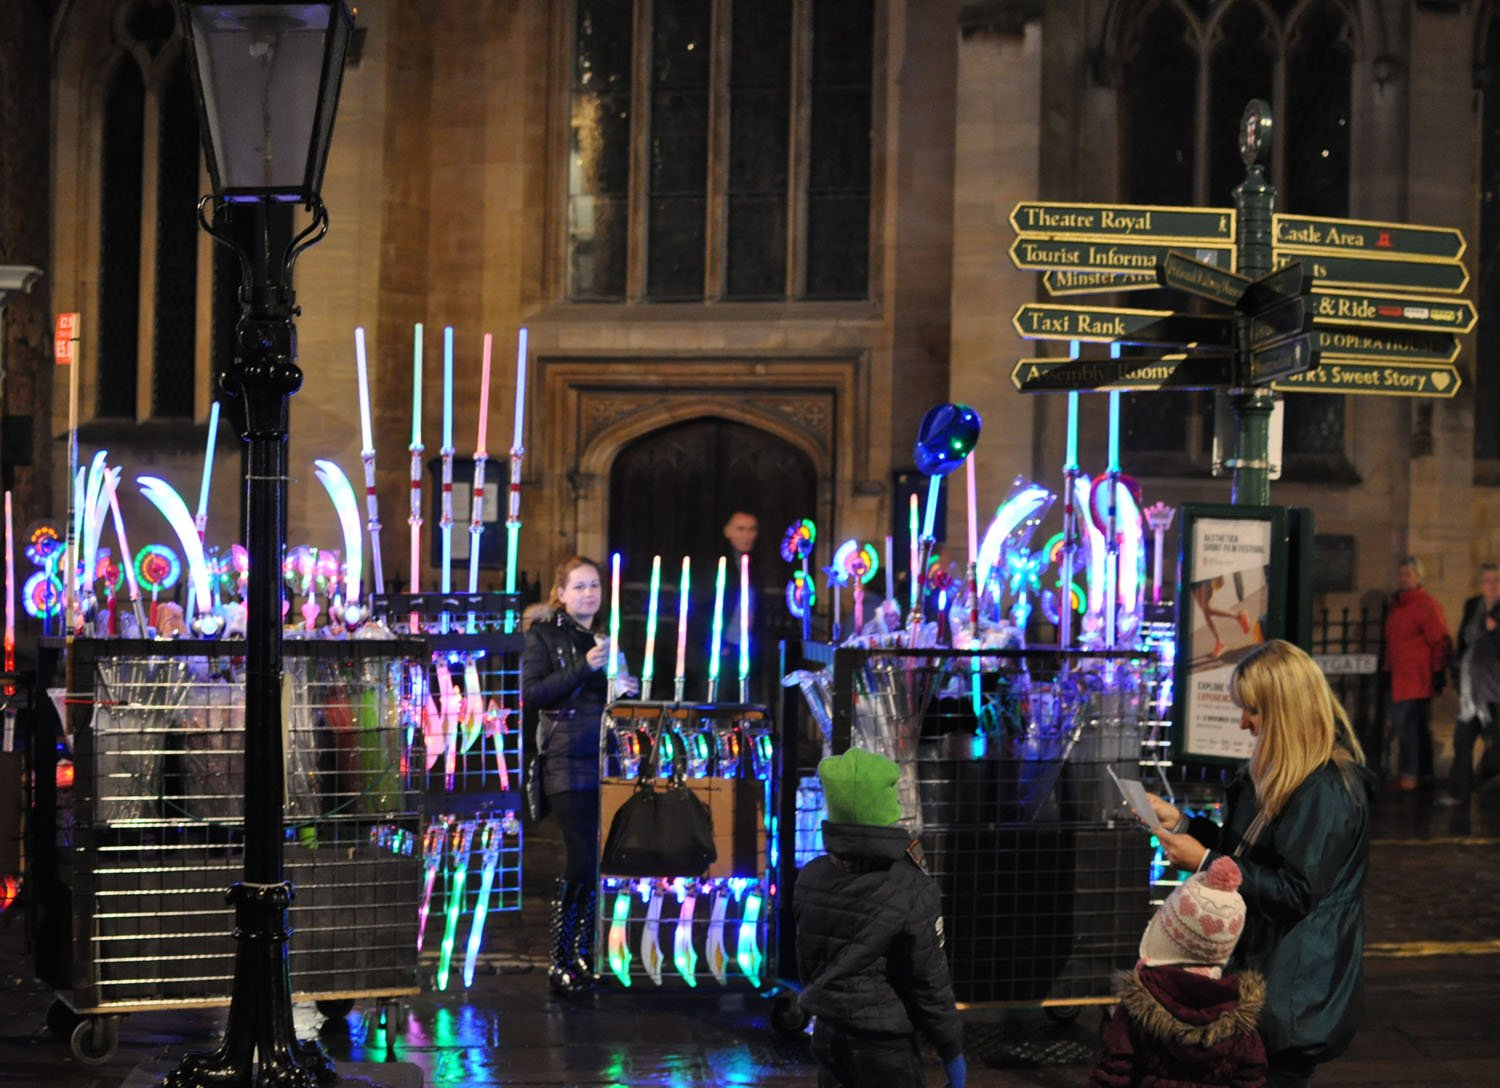 Illuminating York 2015 - St. Helen's Square